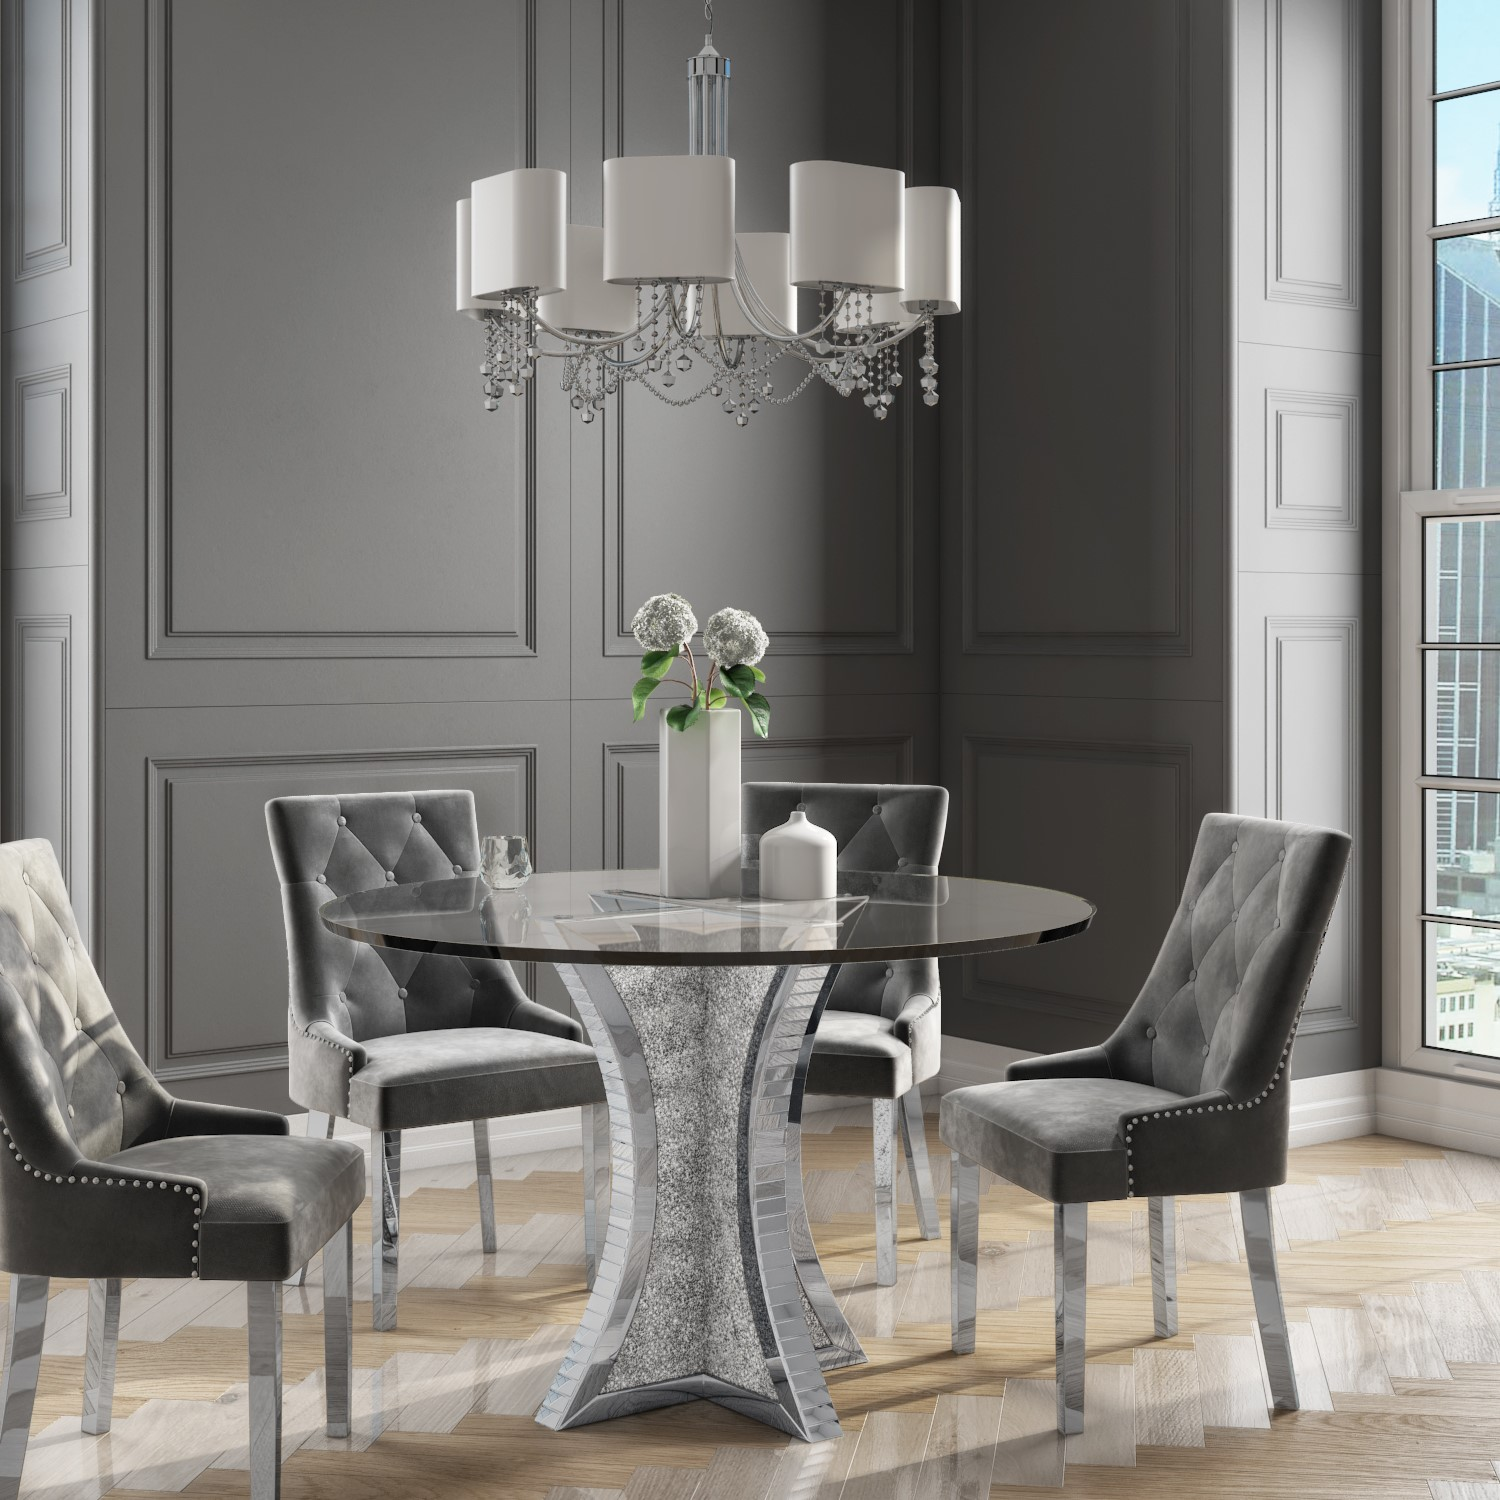 Round Mirrored Dining Table With Glass Top Crushed Diamond Effect Seats 4 Jade Boutique Furniture123